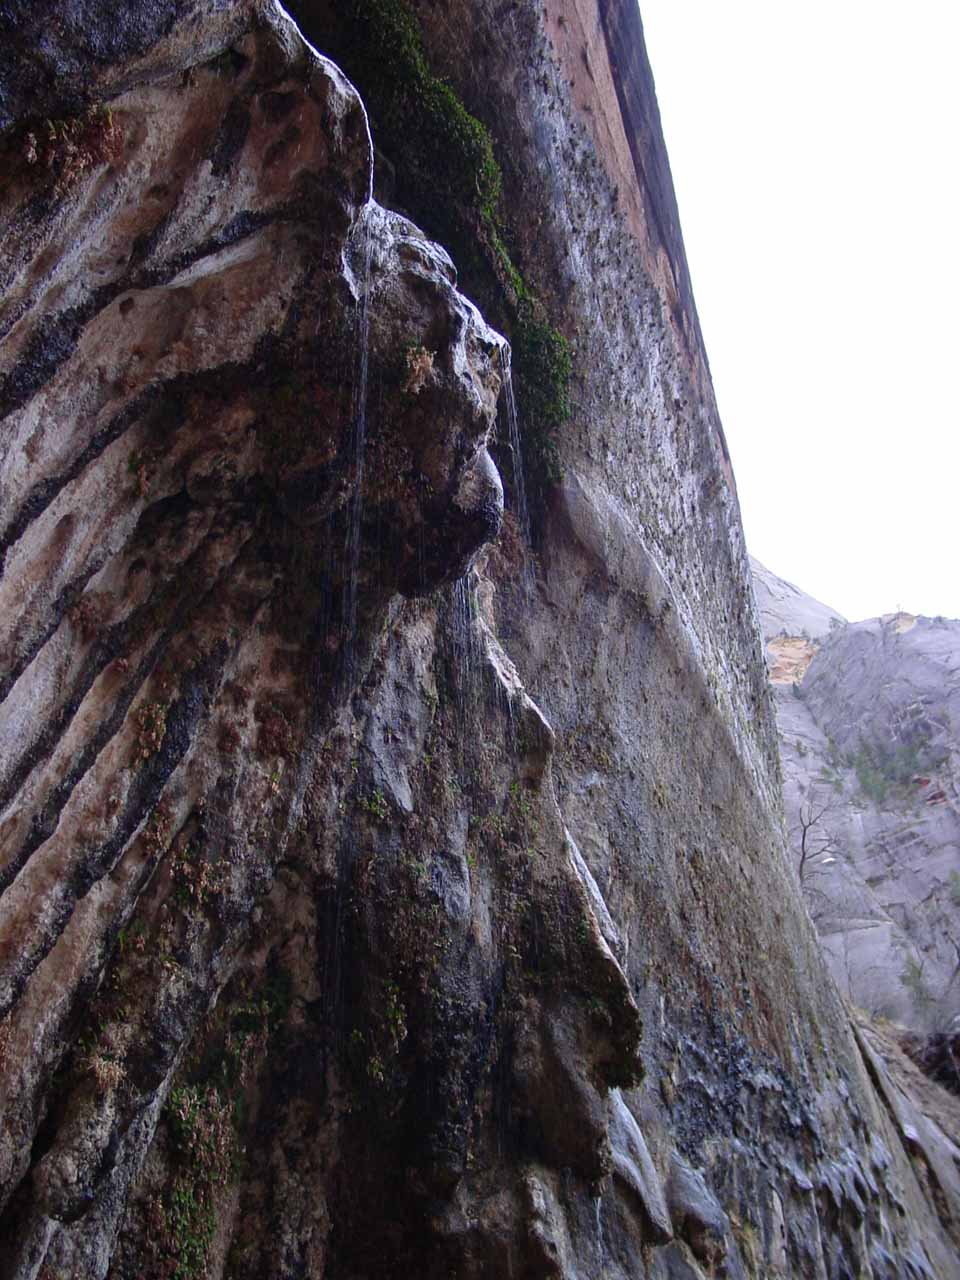 Looking up at Weeping Rock in March 2003